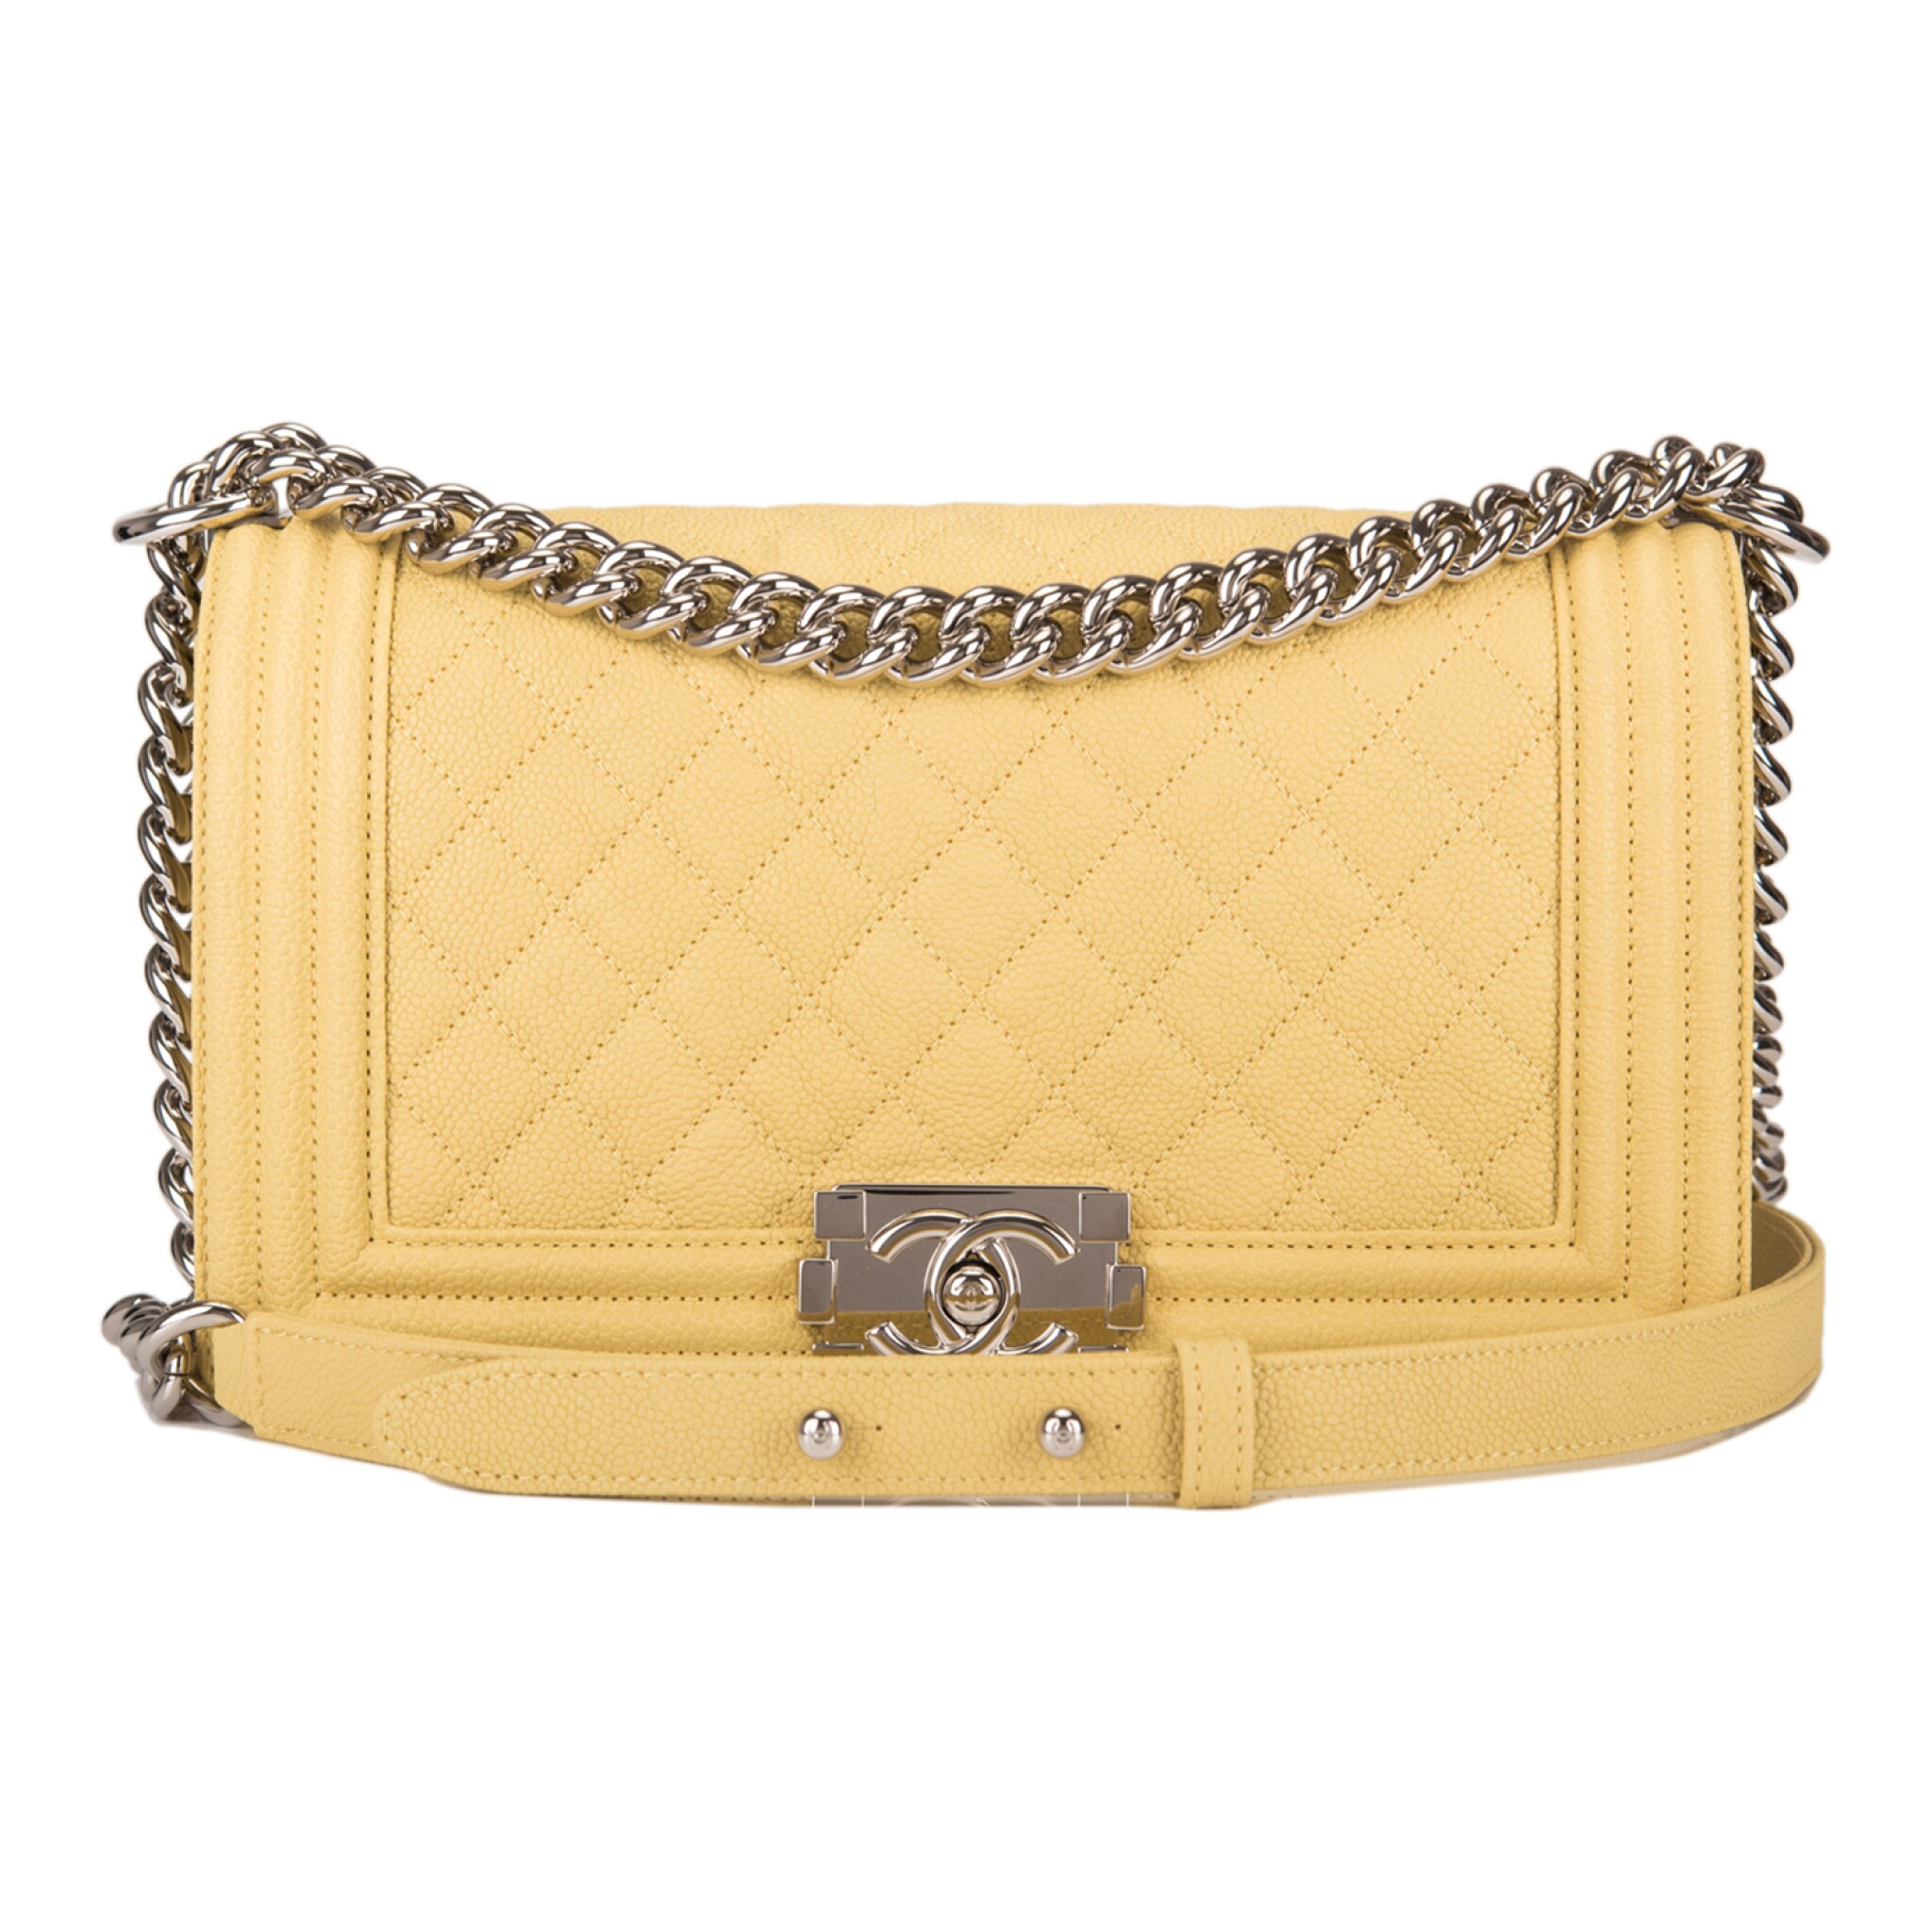 View full screen - View 1 of Lot 84. Chanel Yellow Quilted Old Medium Boy Bag of Caviar Leather with Silver Hardware.